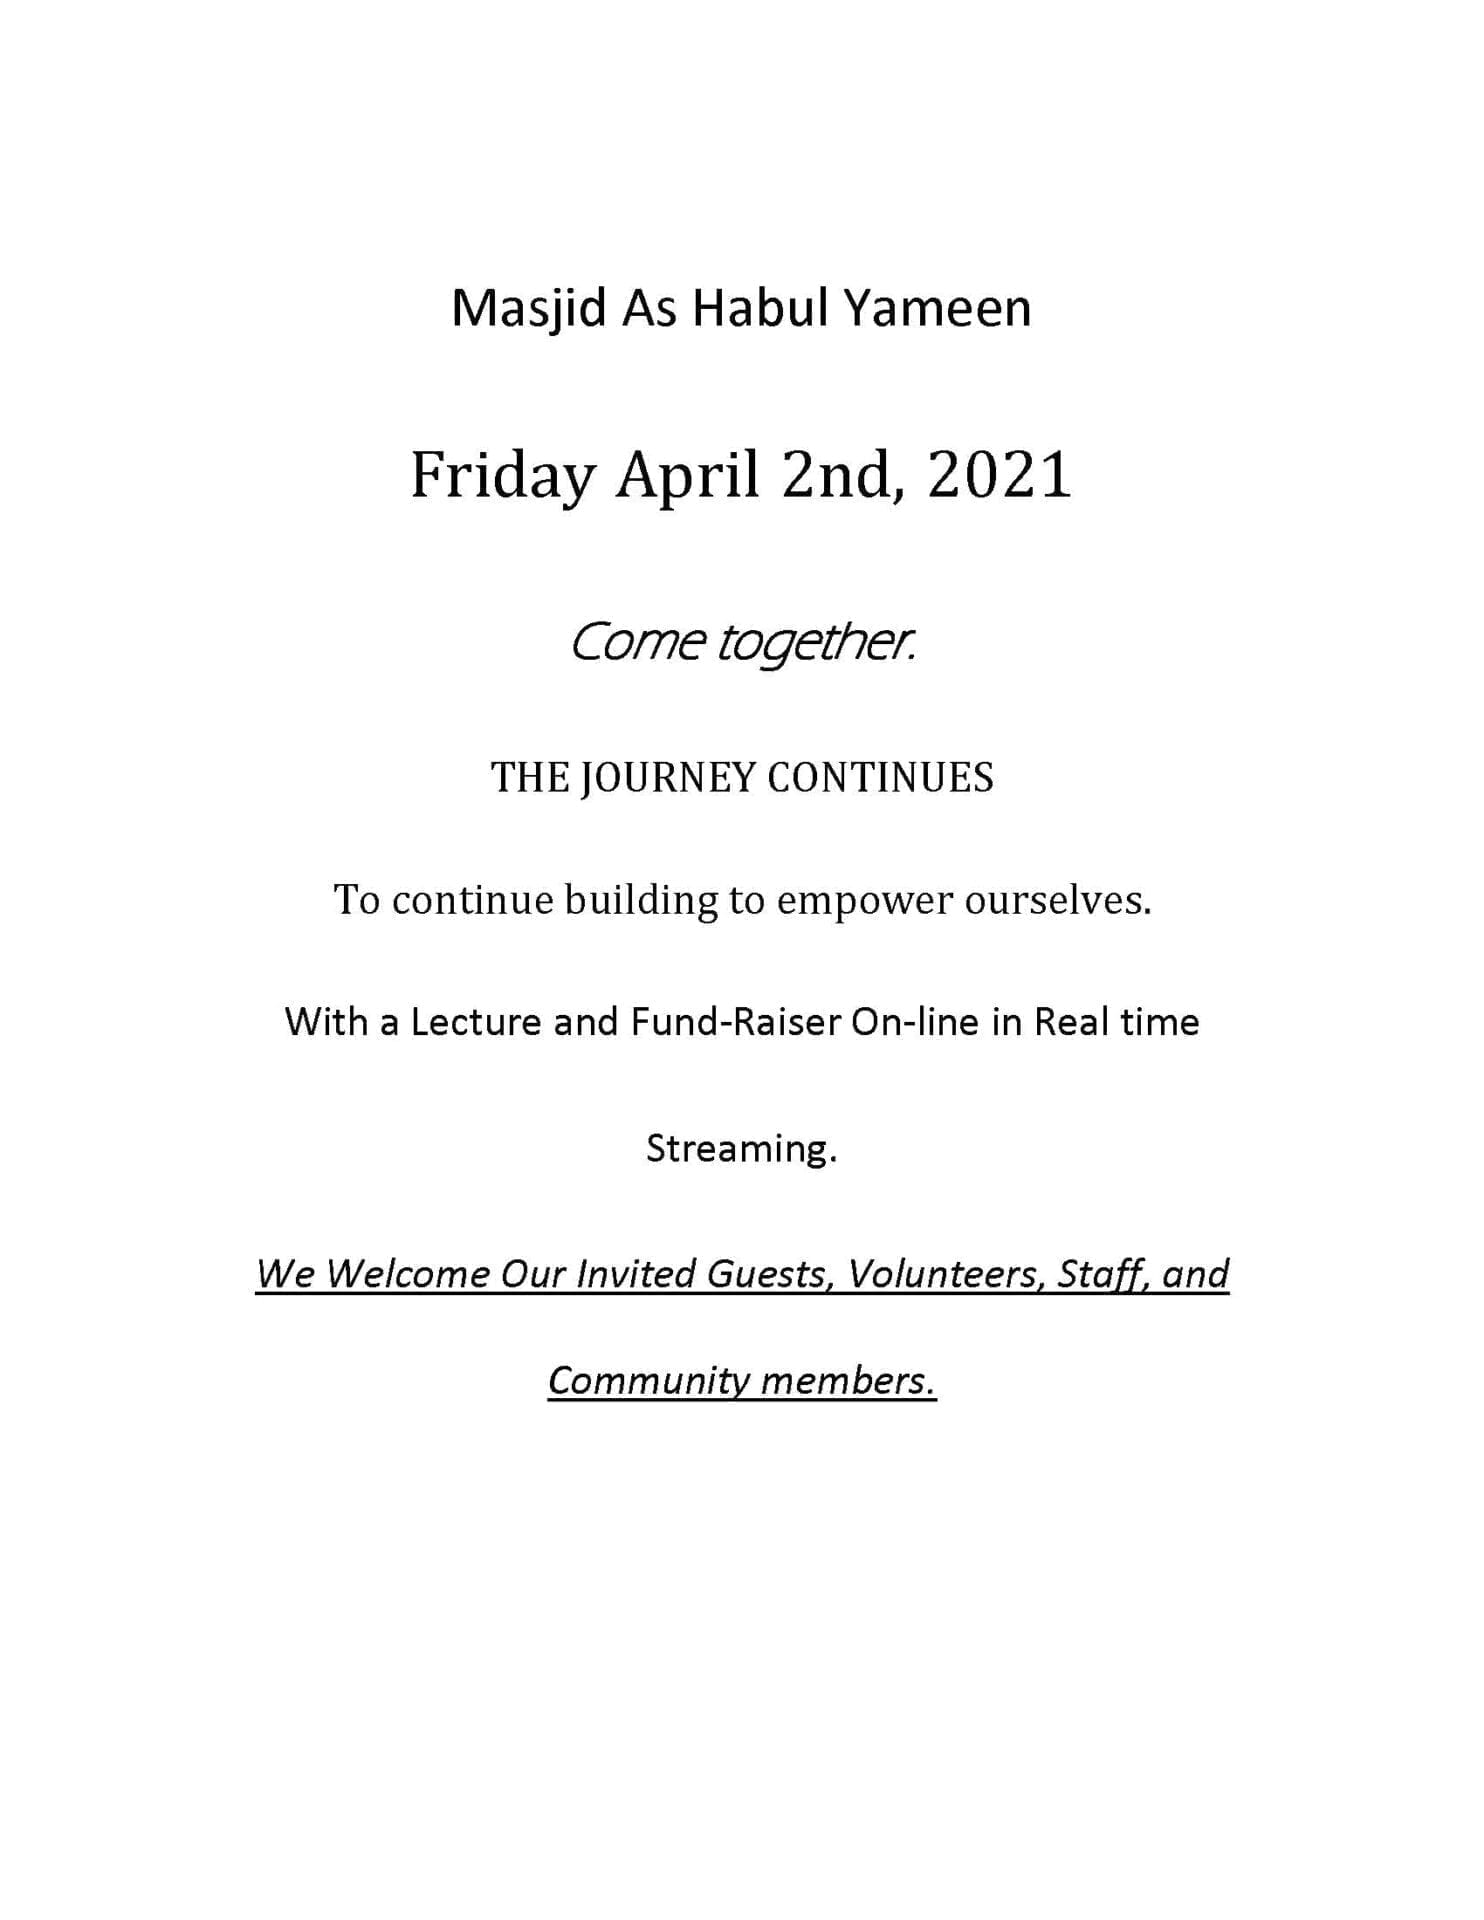 Masjid As Habul Yameen April 2 2021